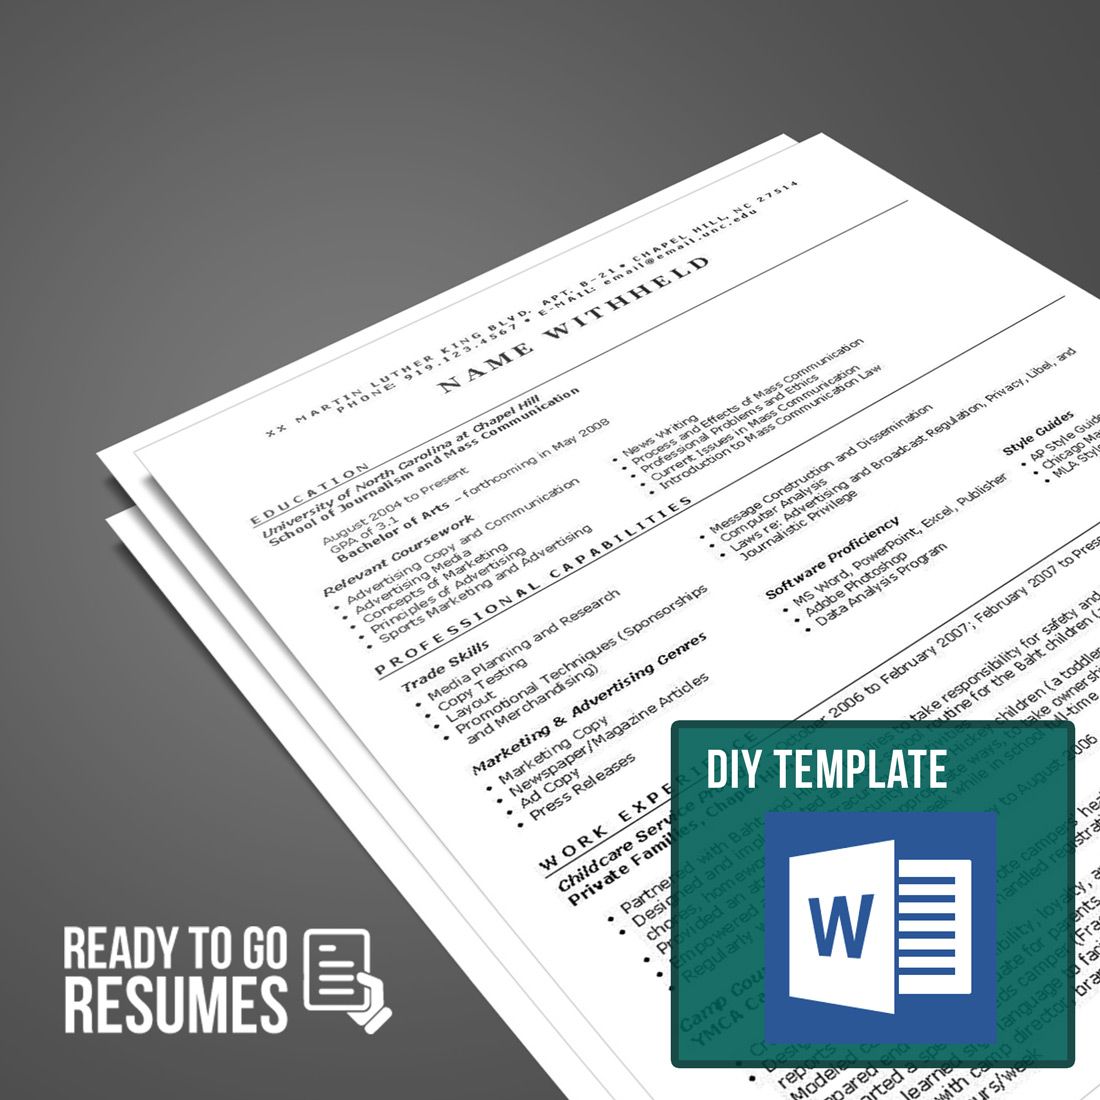 Diy Resume Template Federal Resume Diy Template Ready To Go Resumes